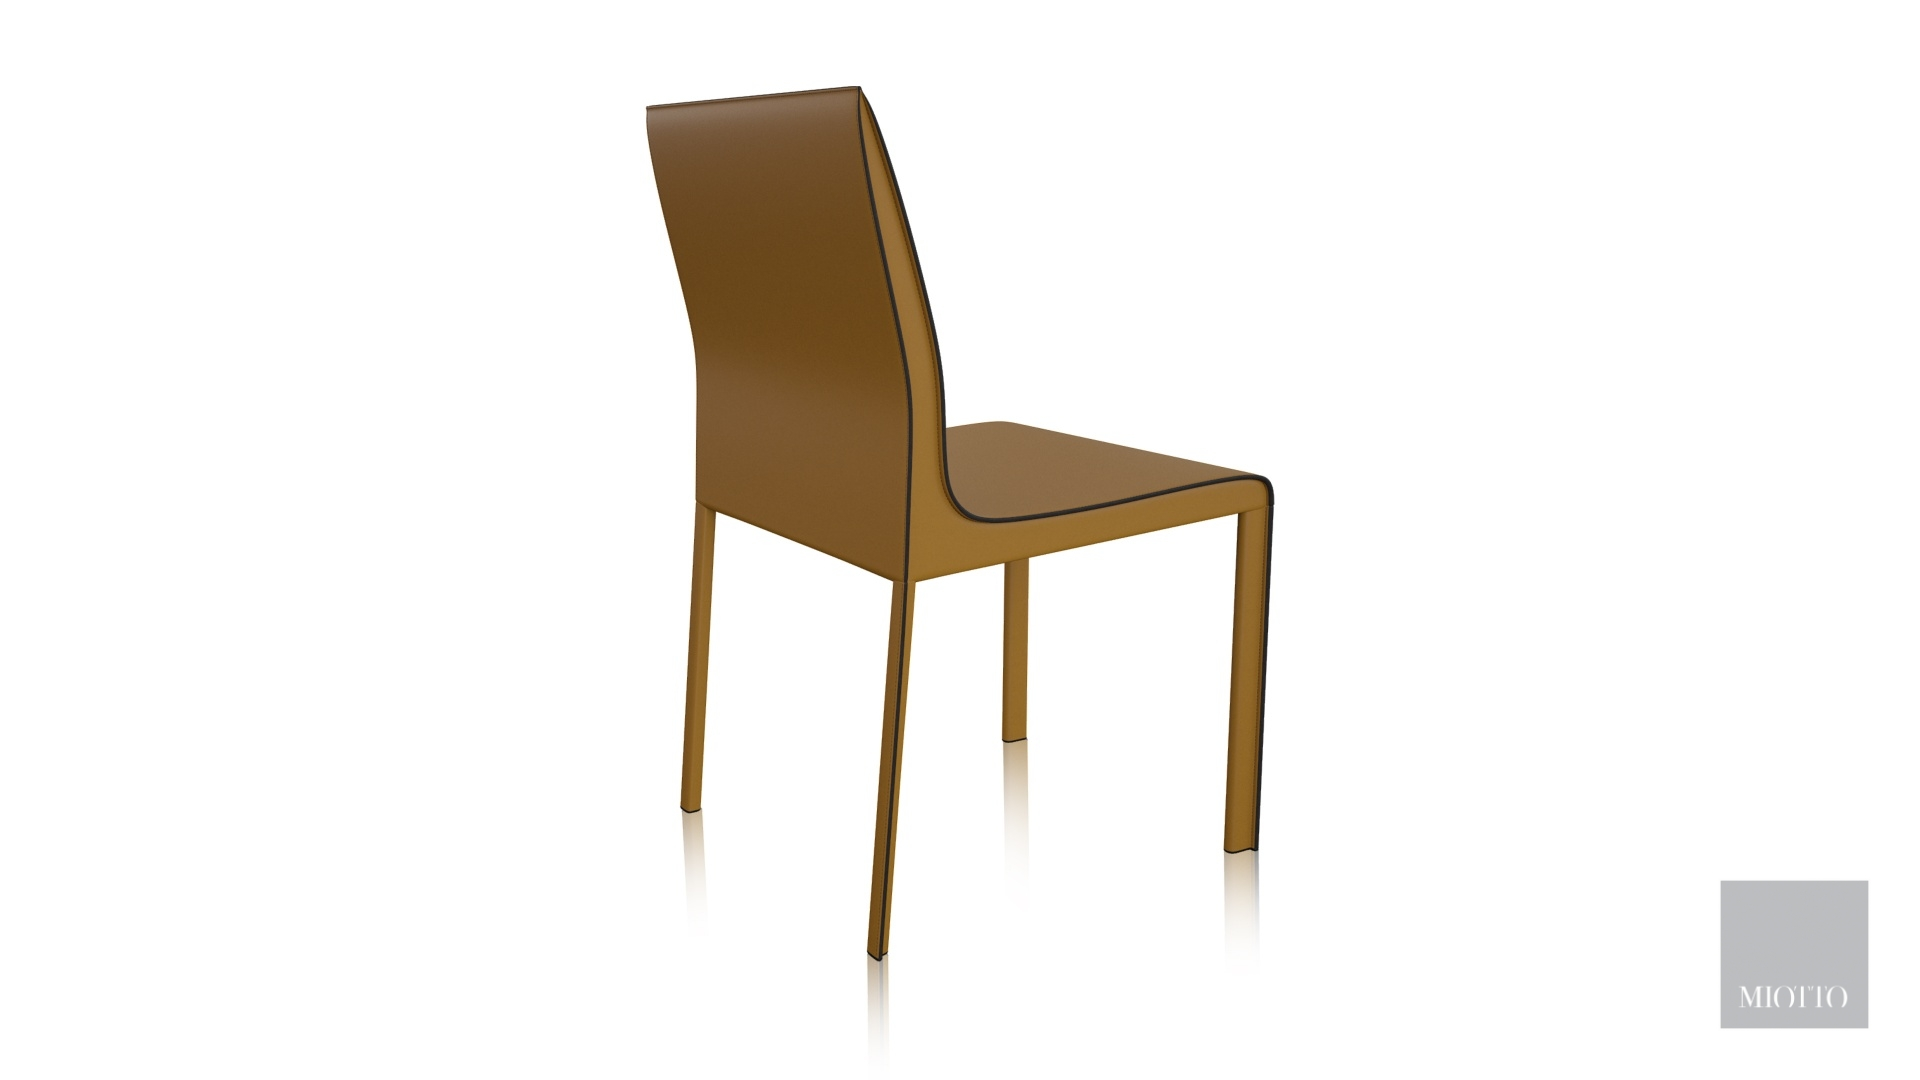 miotto_ardini DC back T miotto dining chair furniture